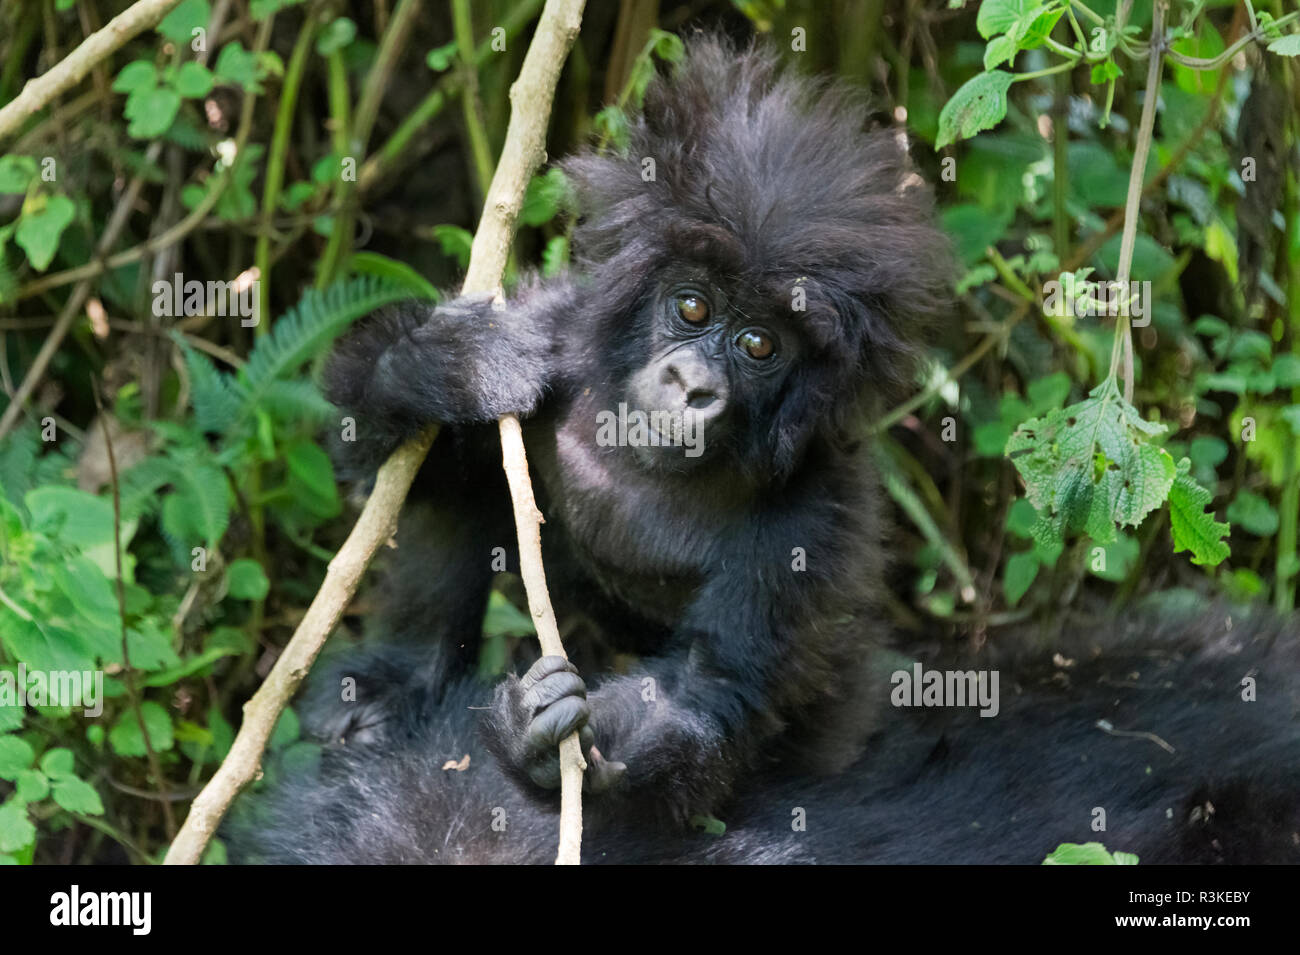 Gorilla mother with 6-month-old baby in the forest, Parc National des Volcans, Rwanda - Stock Image